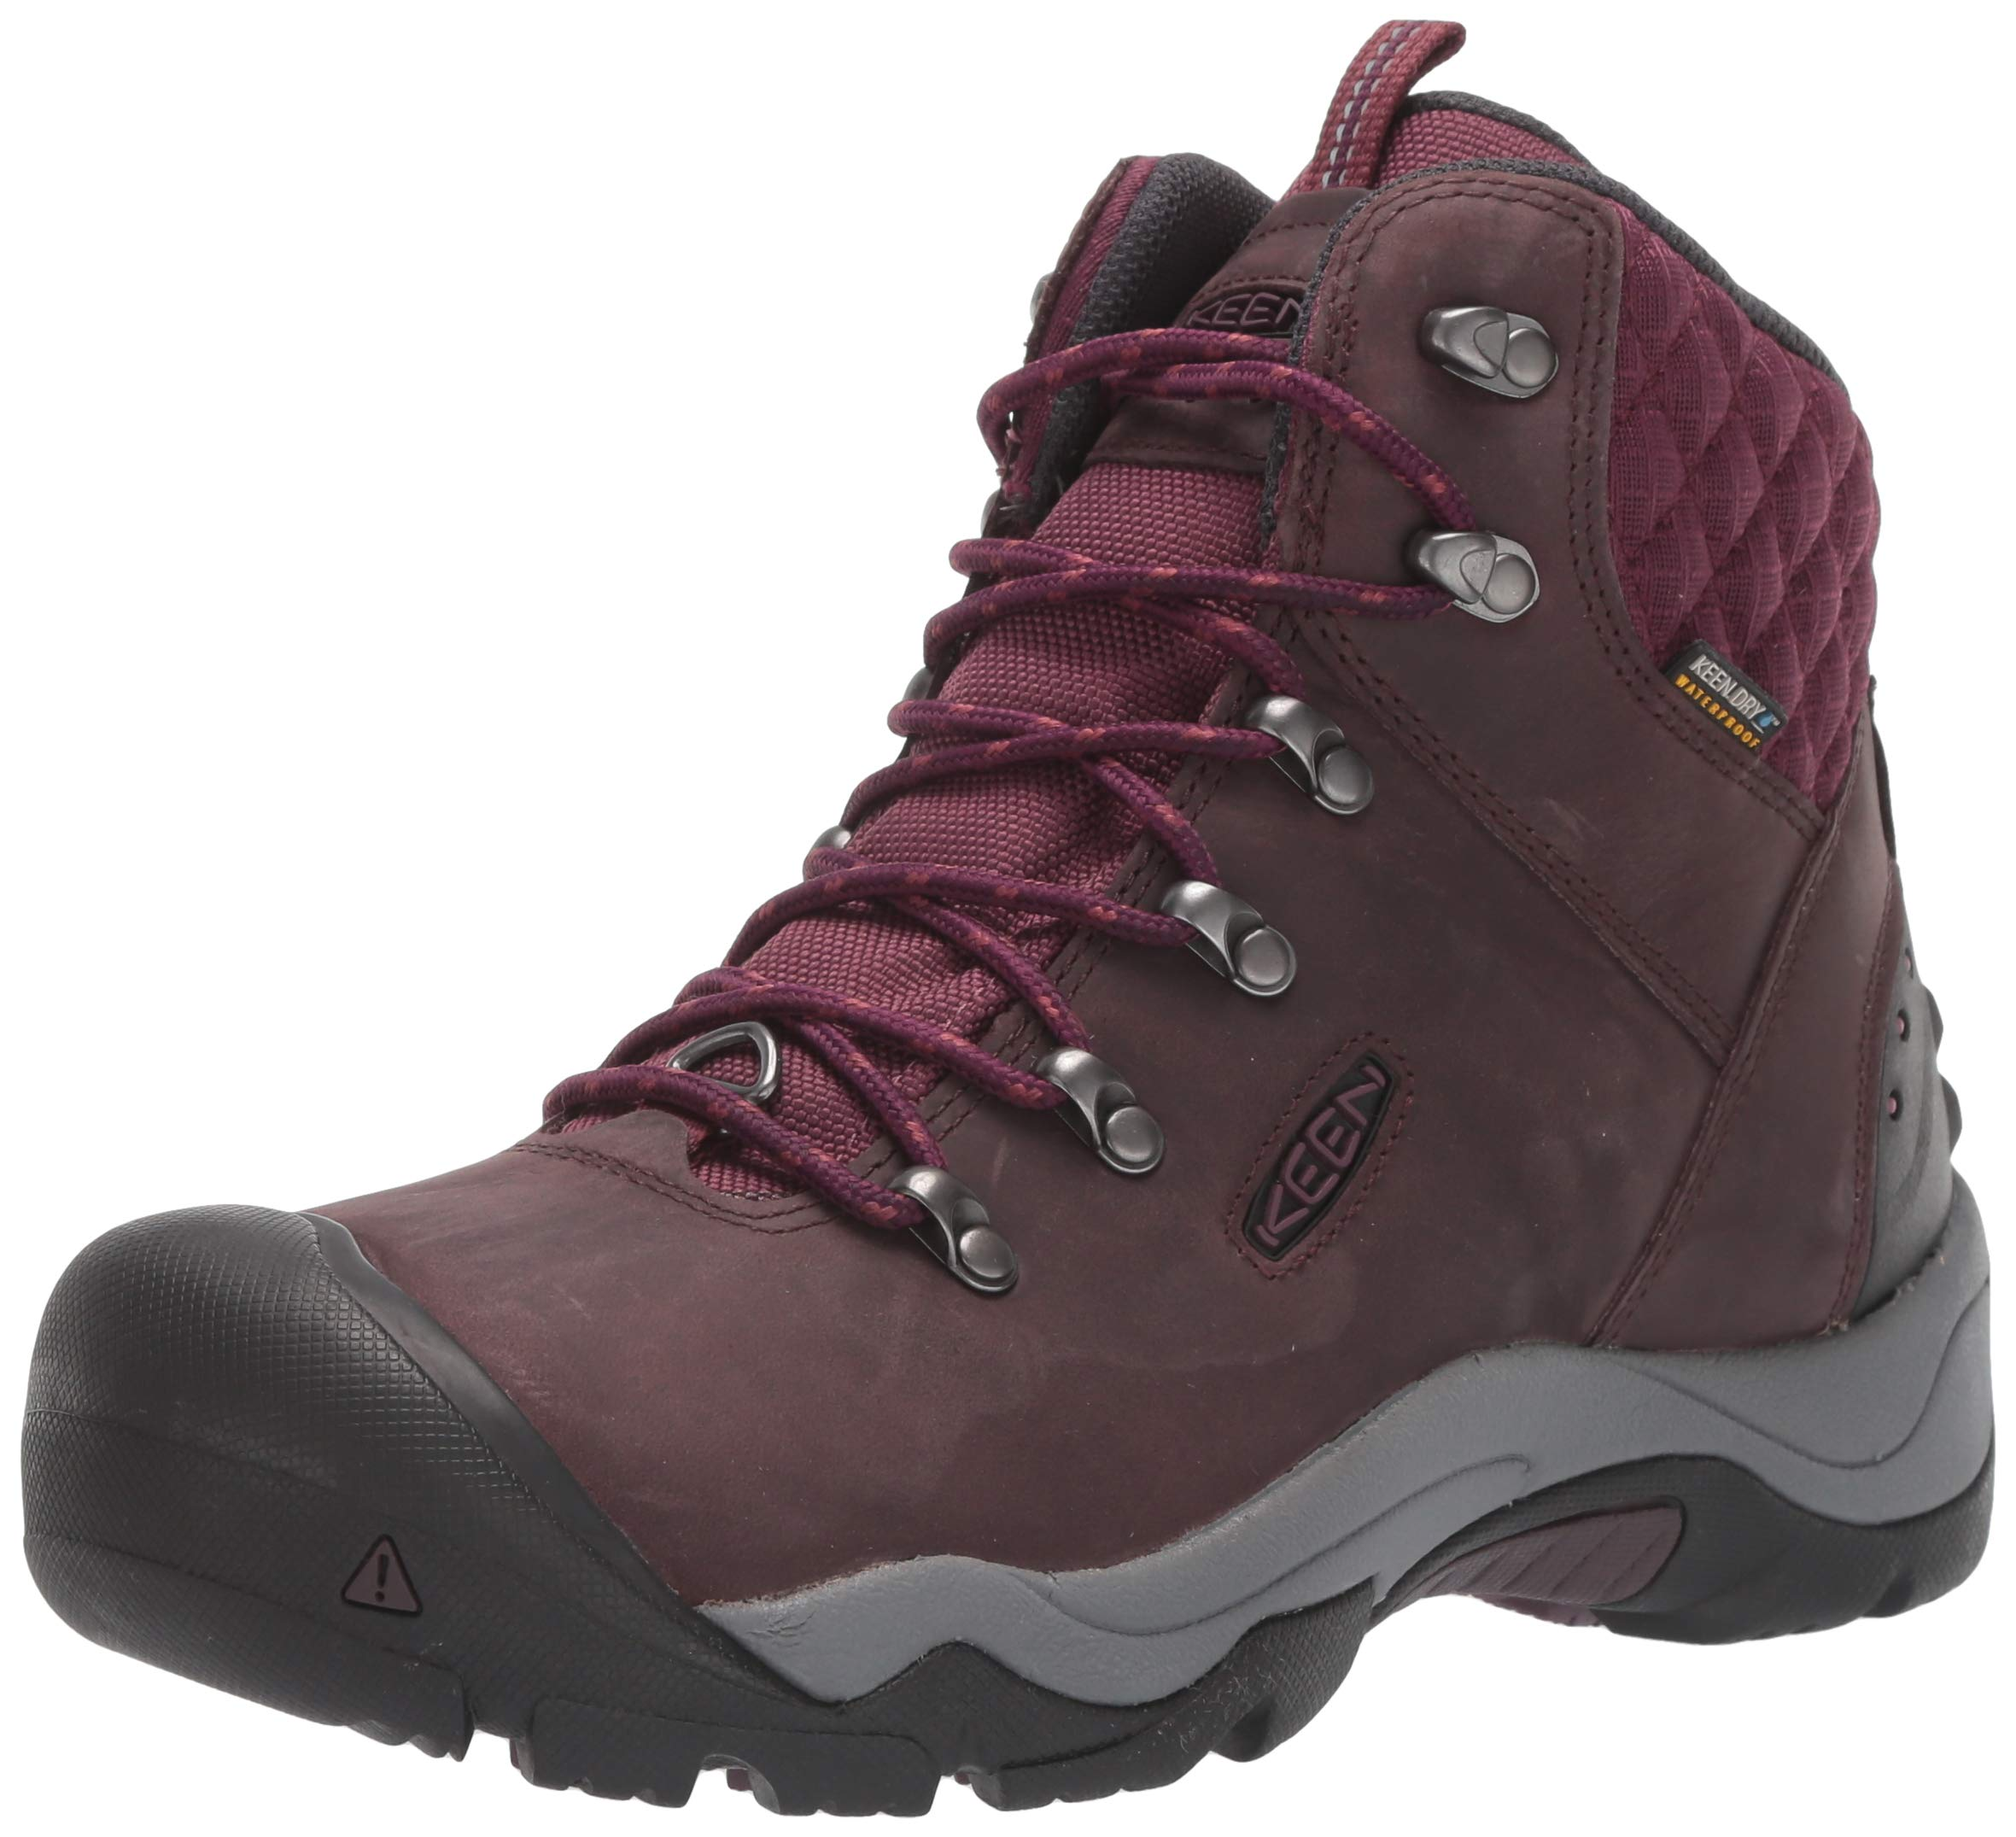 KEEN Women's Revel III Boot, Peppercorn/Eggplant, 10 M US by KEEN